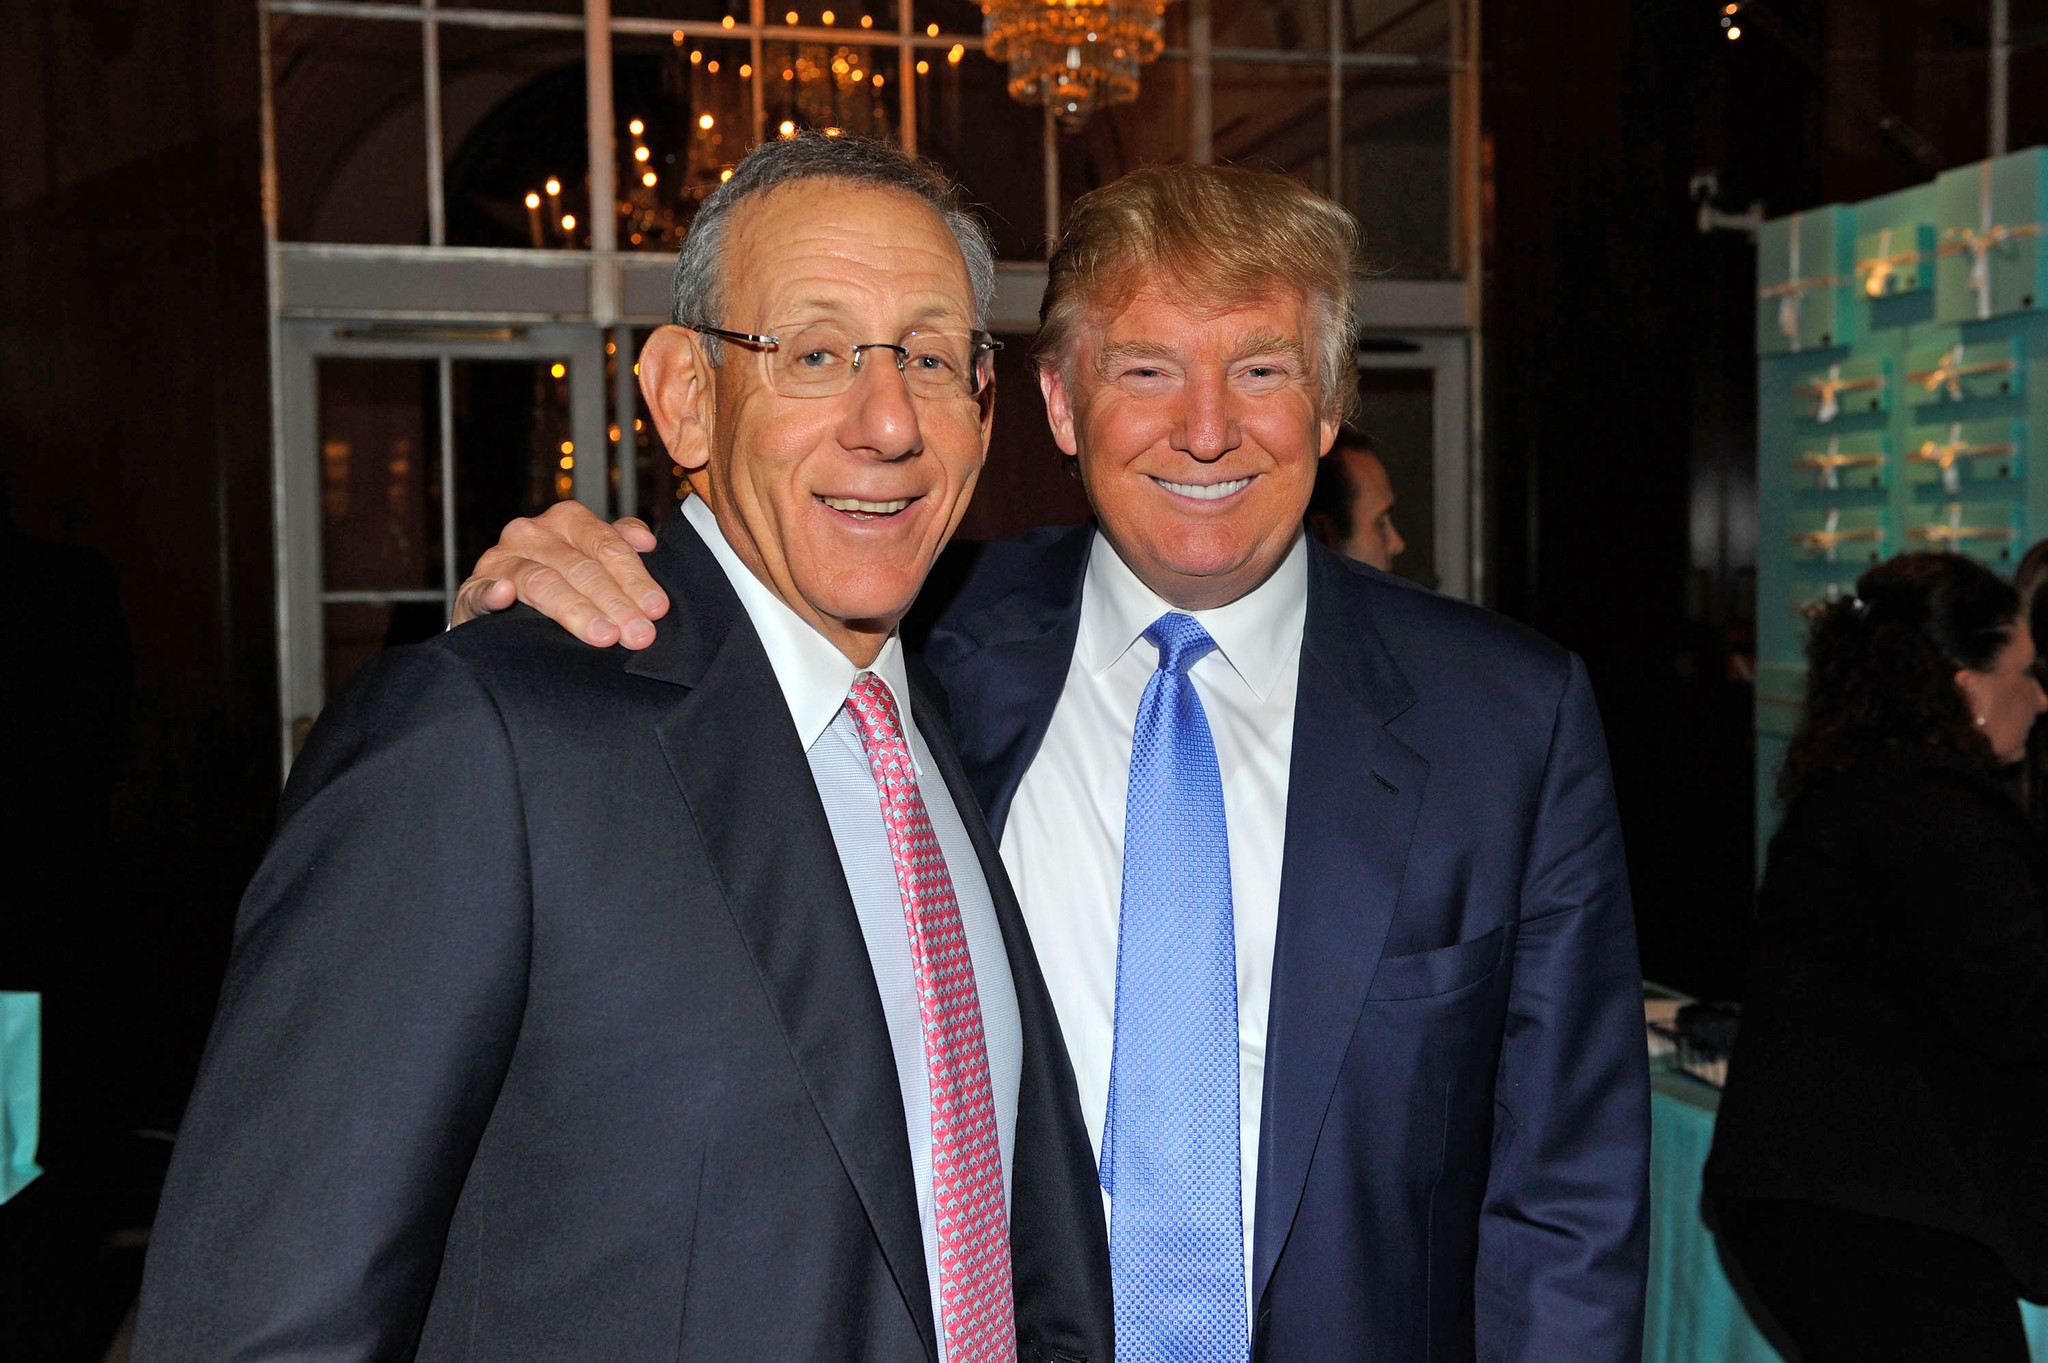 Equinox, SoulCycle members flee as parent company owner Stephen Ross prepares to host Trump fund-raiser